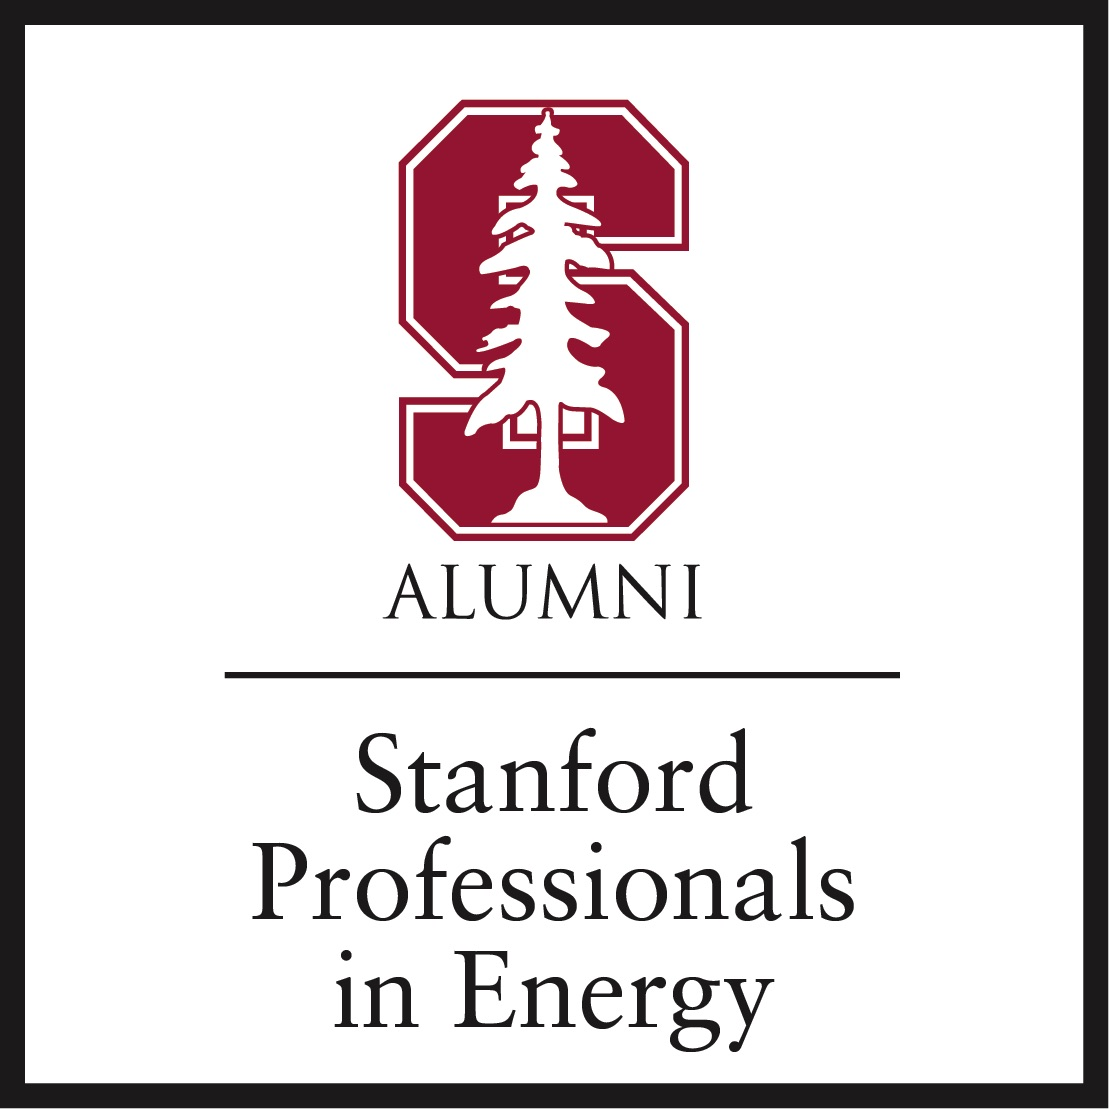 Stanford Professionals in Energy.2C.jpg